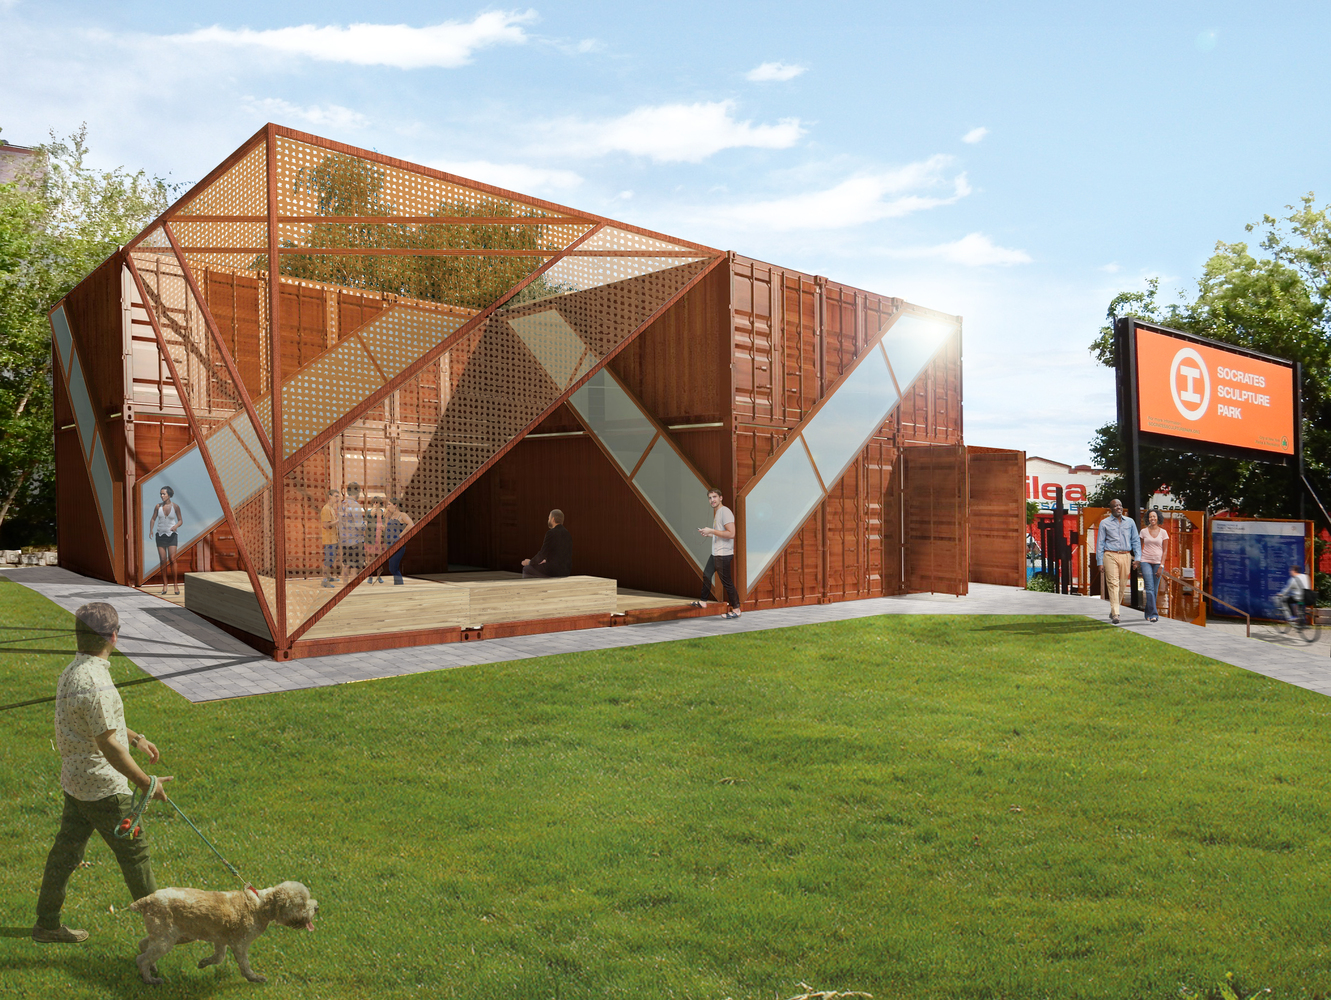 Container Haus Cube Gallery Of Lot Ek Architecture Uses Recycled Shipping Containers For